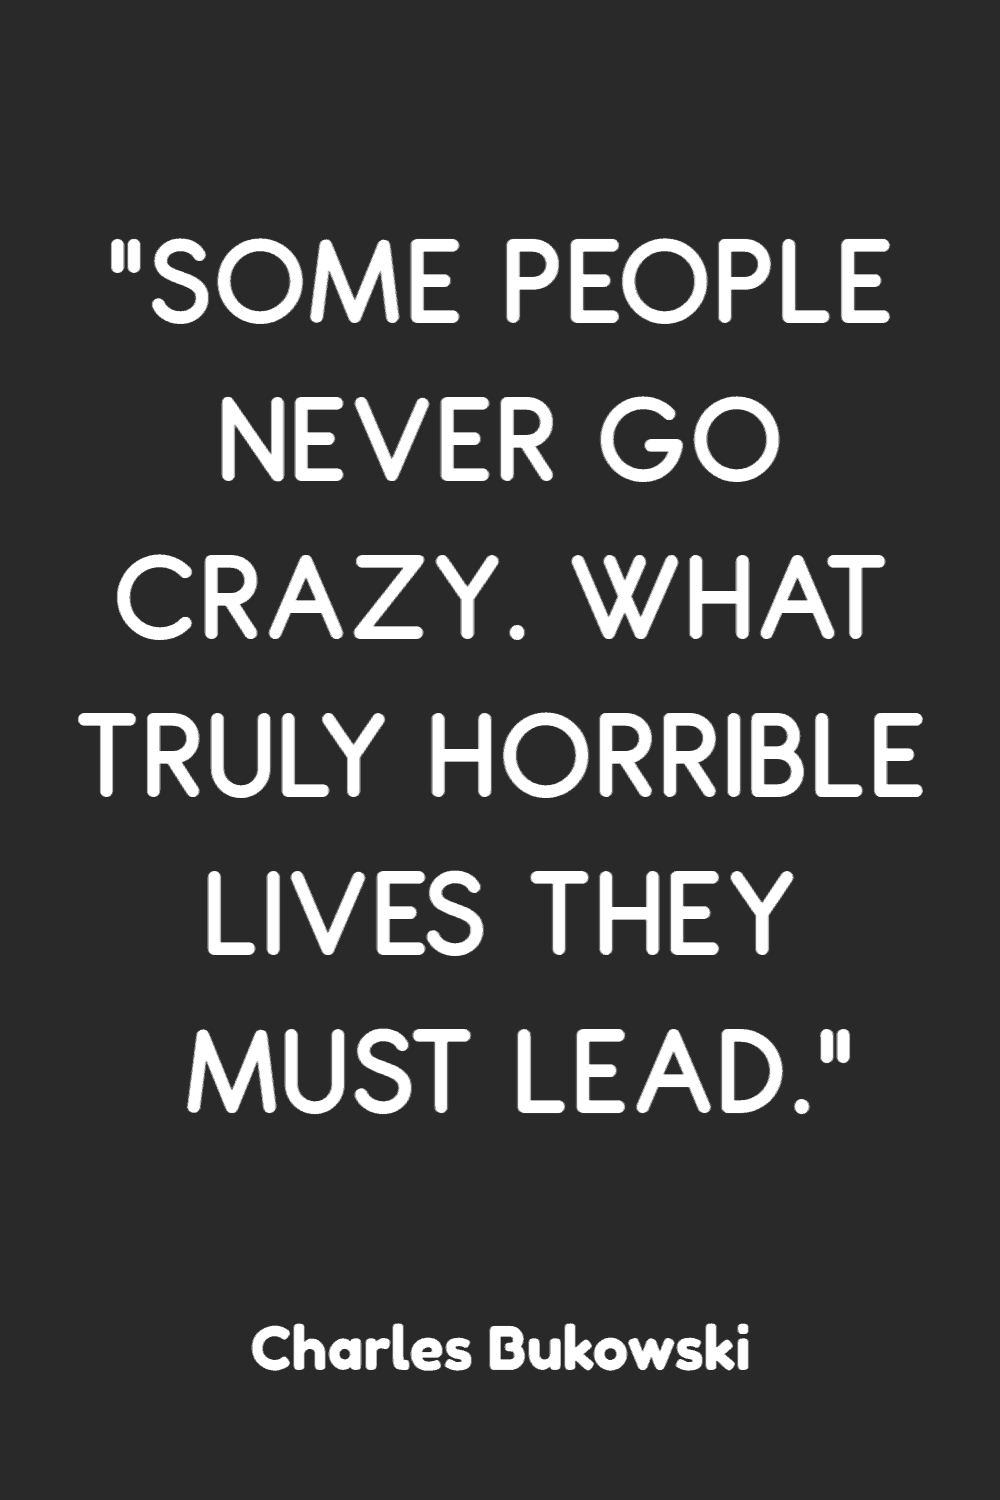 funny quotes crazy 25 Just Plain Funny Quotes to Brighten Your Day